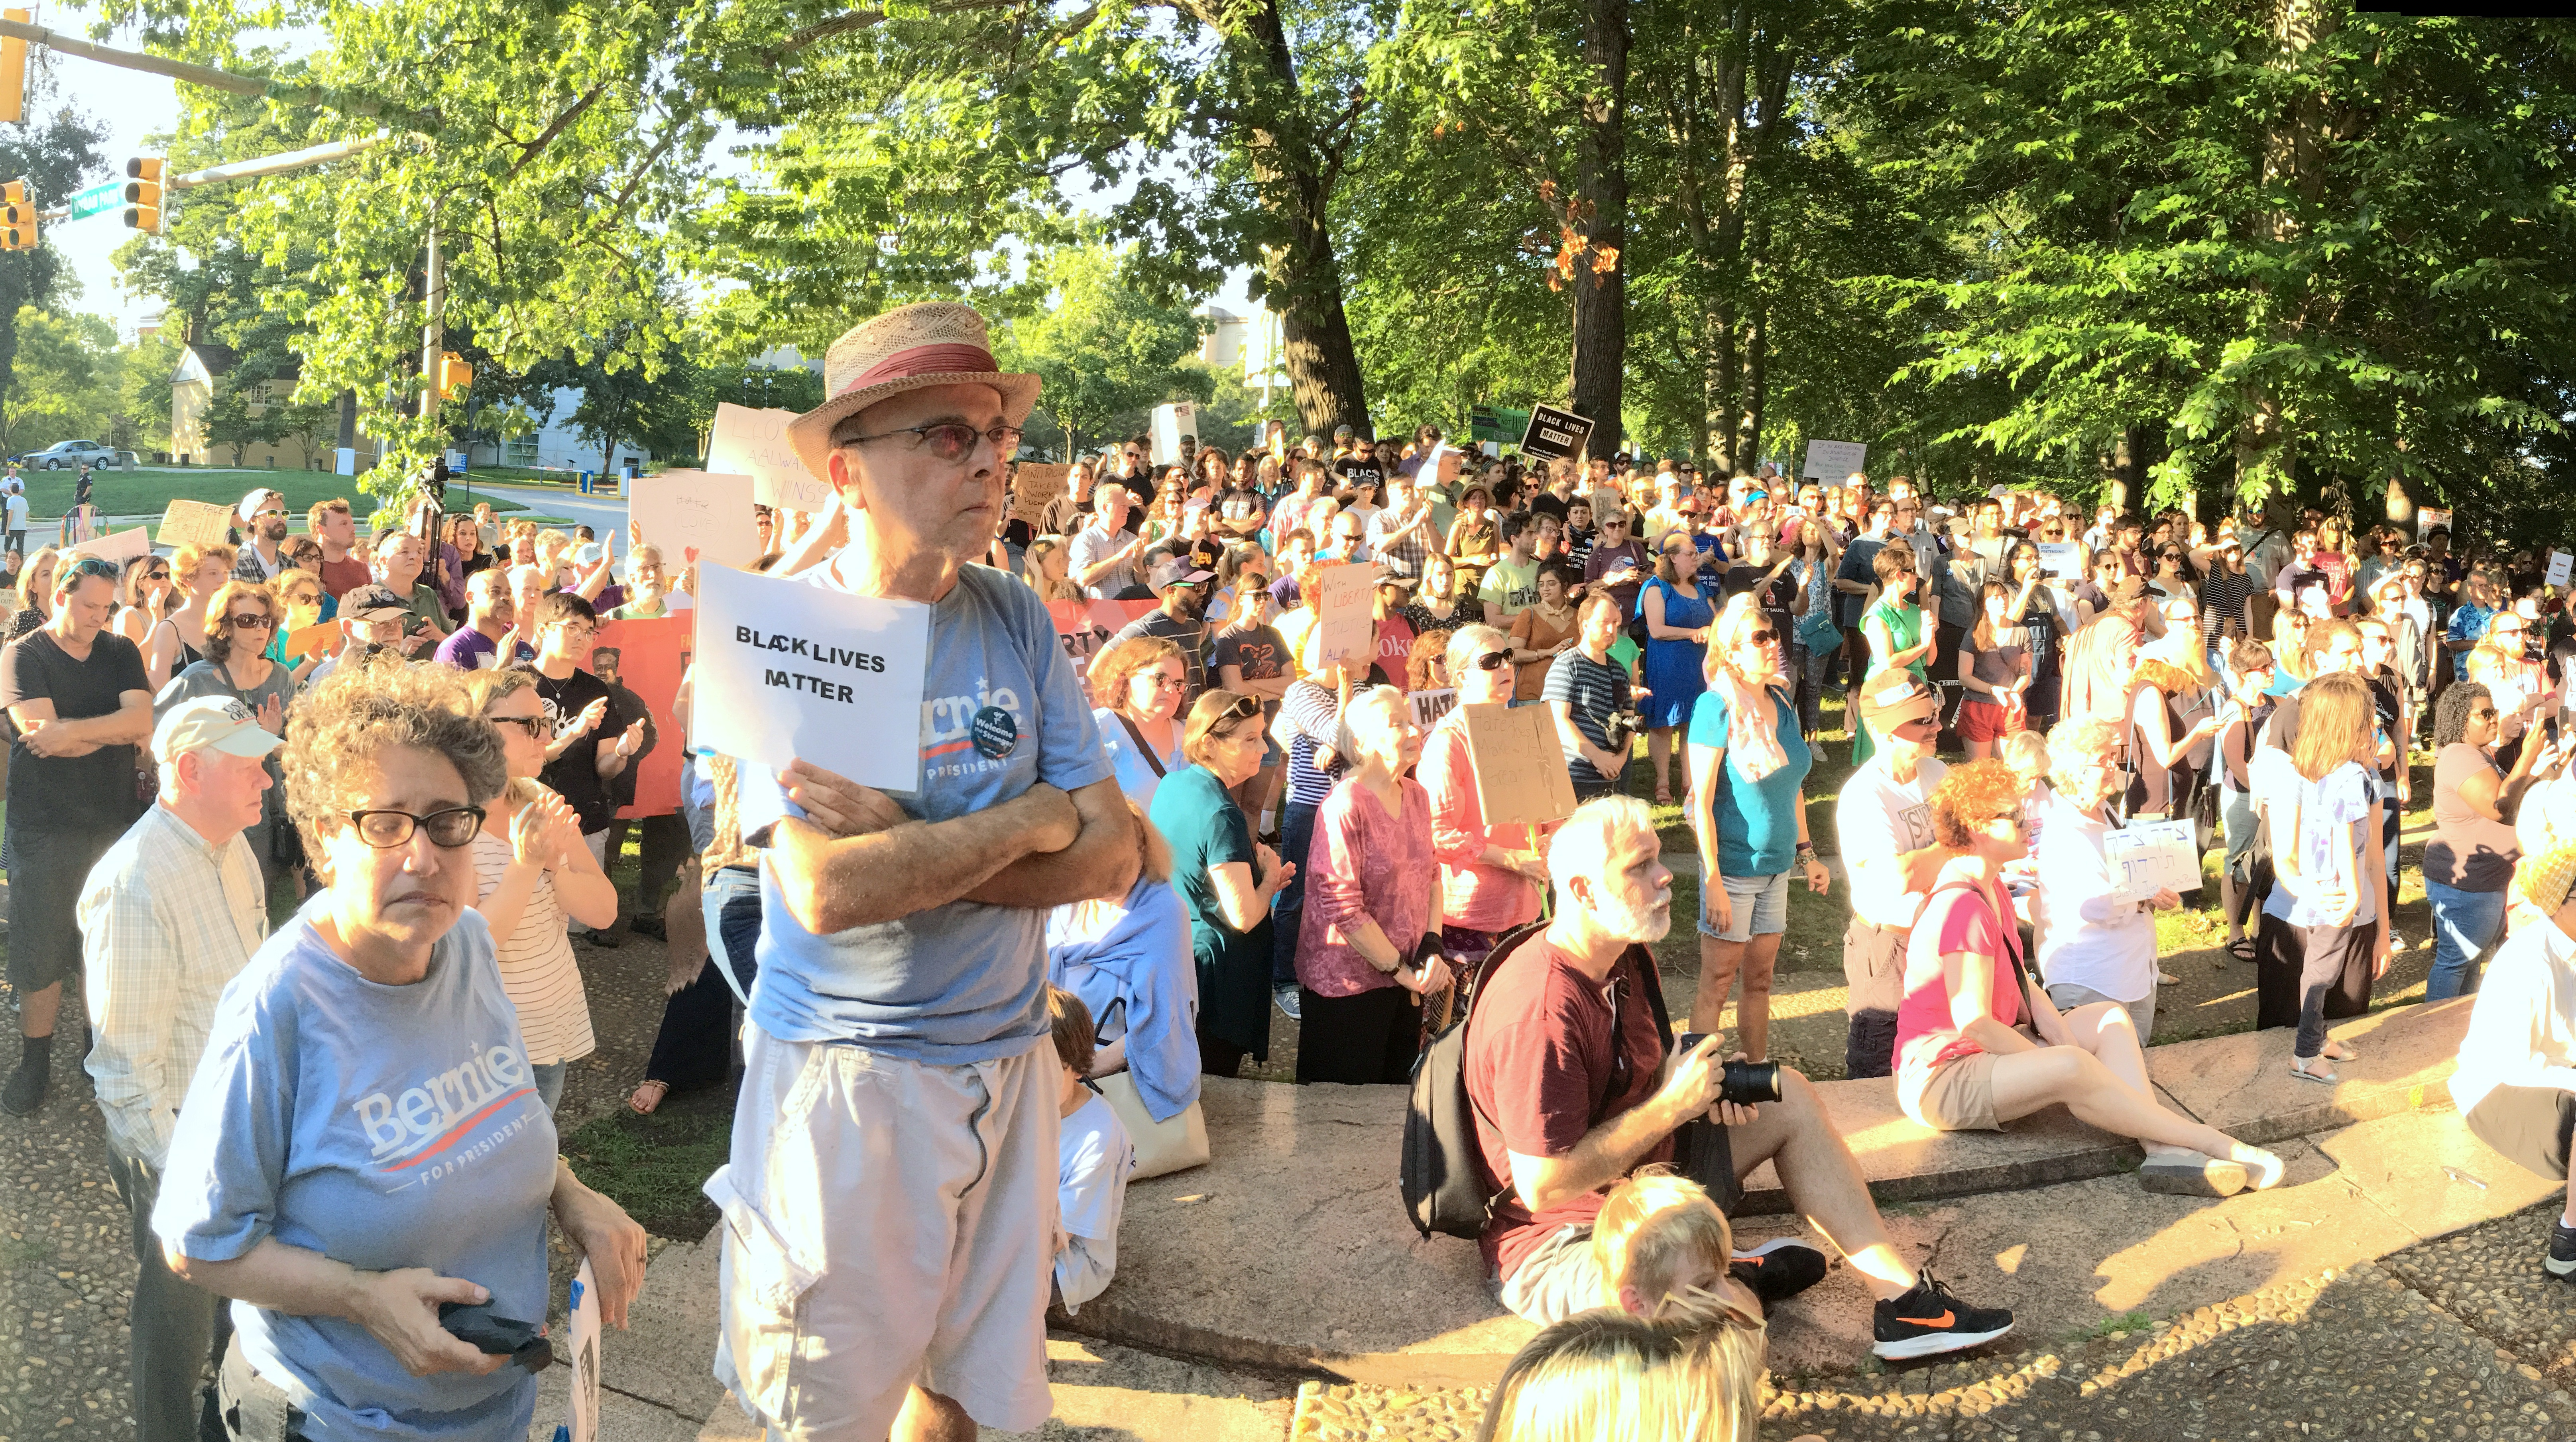 The crowd listens to speakers at the Lee-Jackson Monument. (Fern Shen)